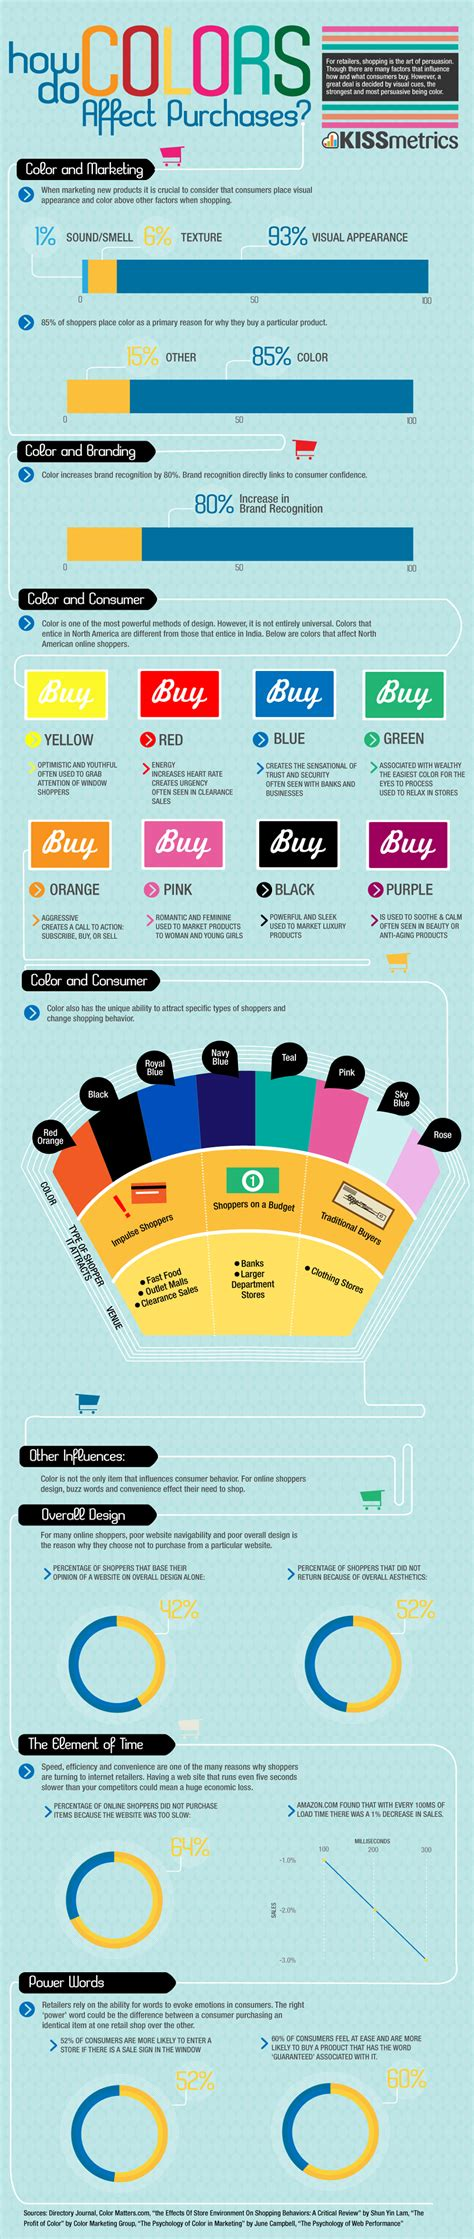 how colors affect you how do colors affect online shopping